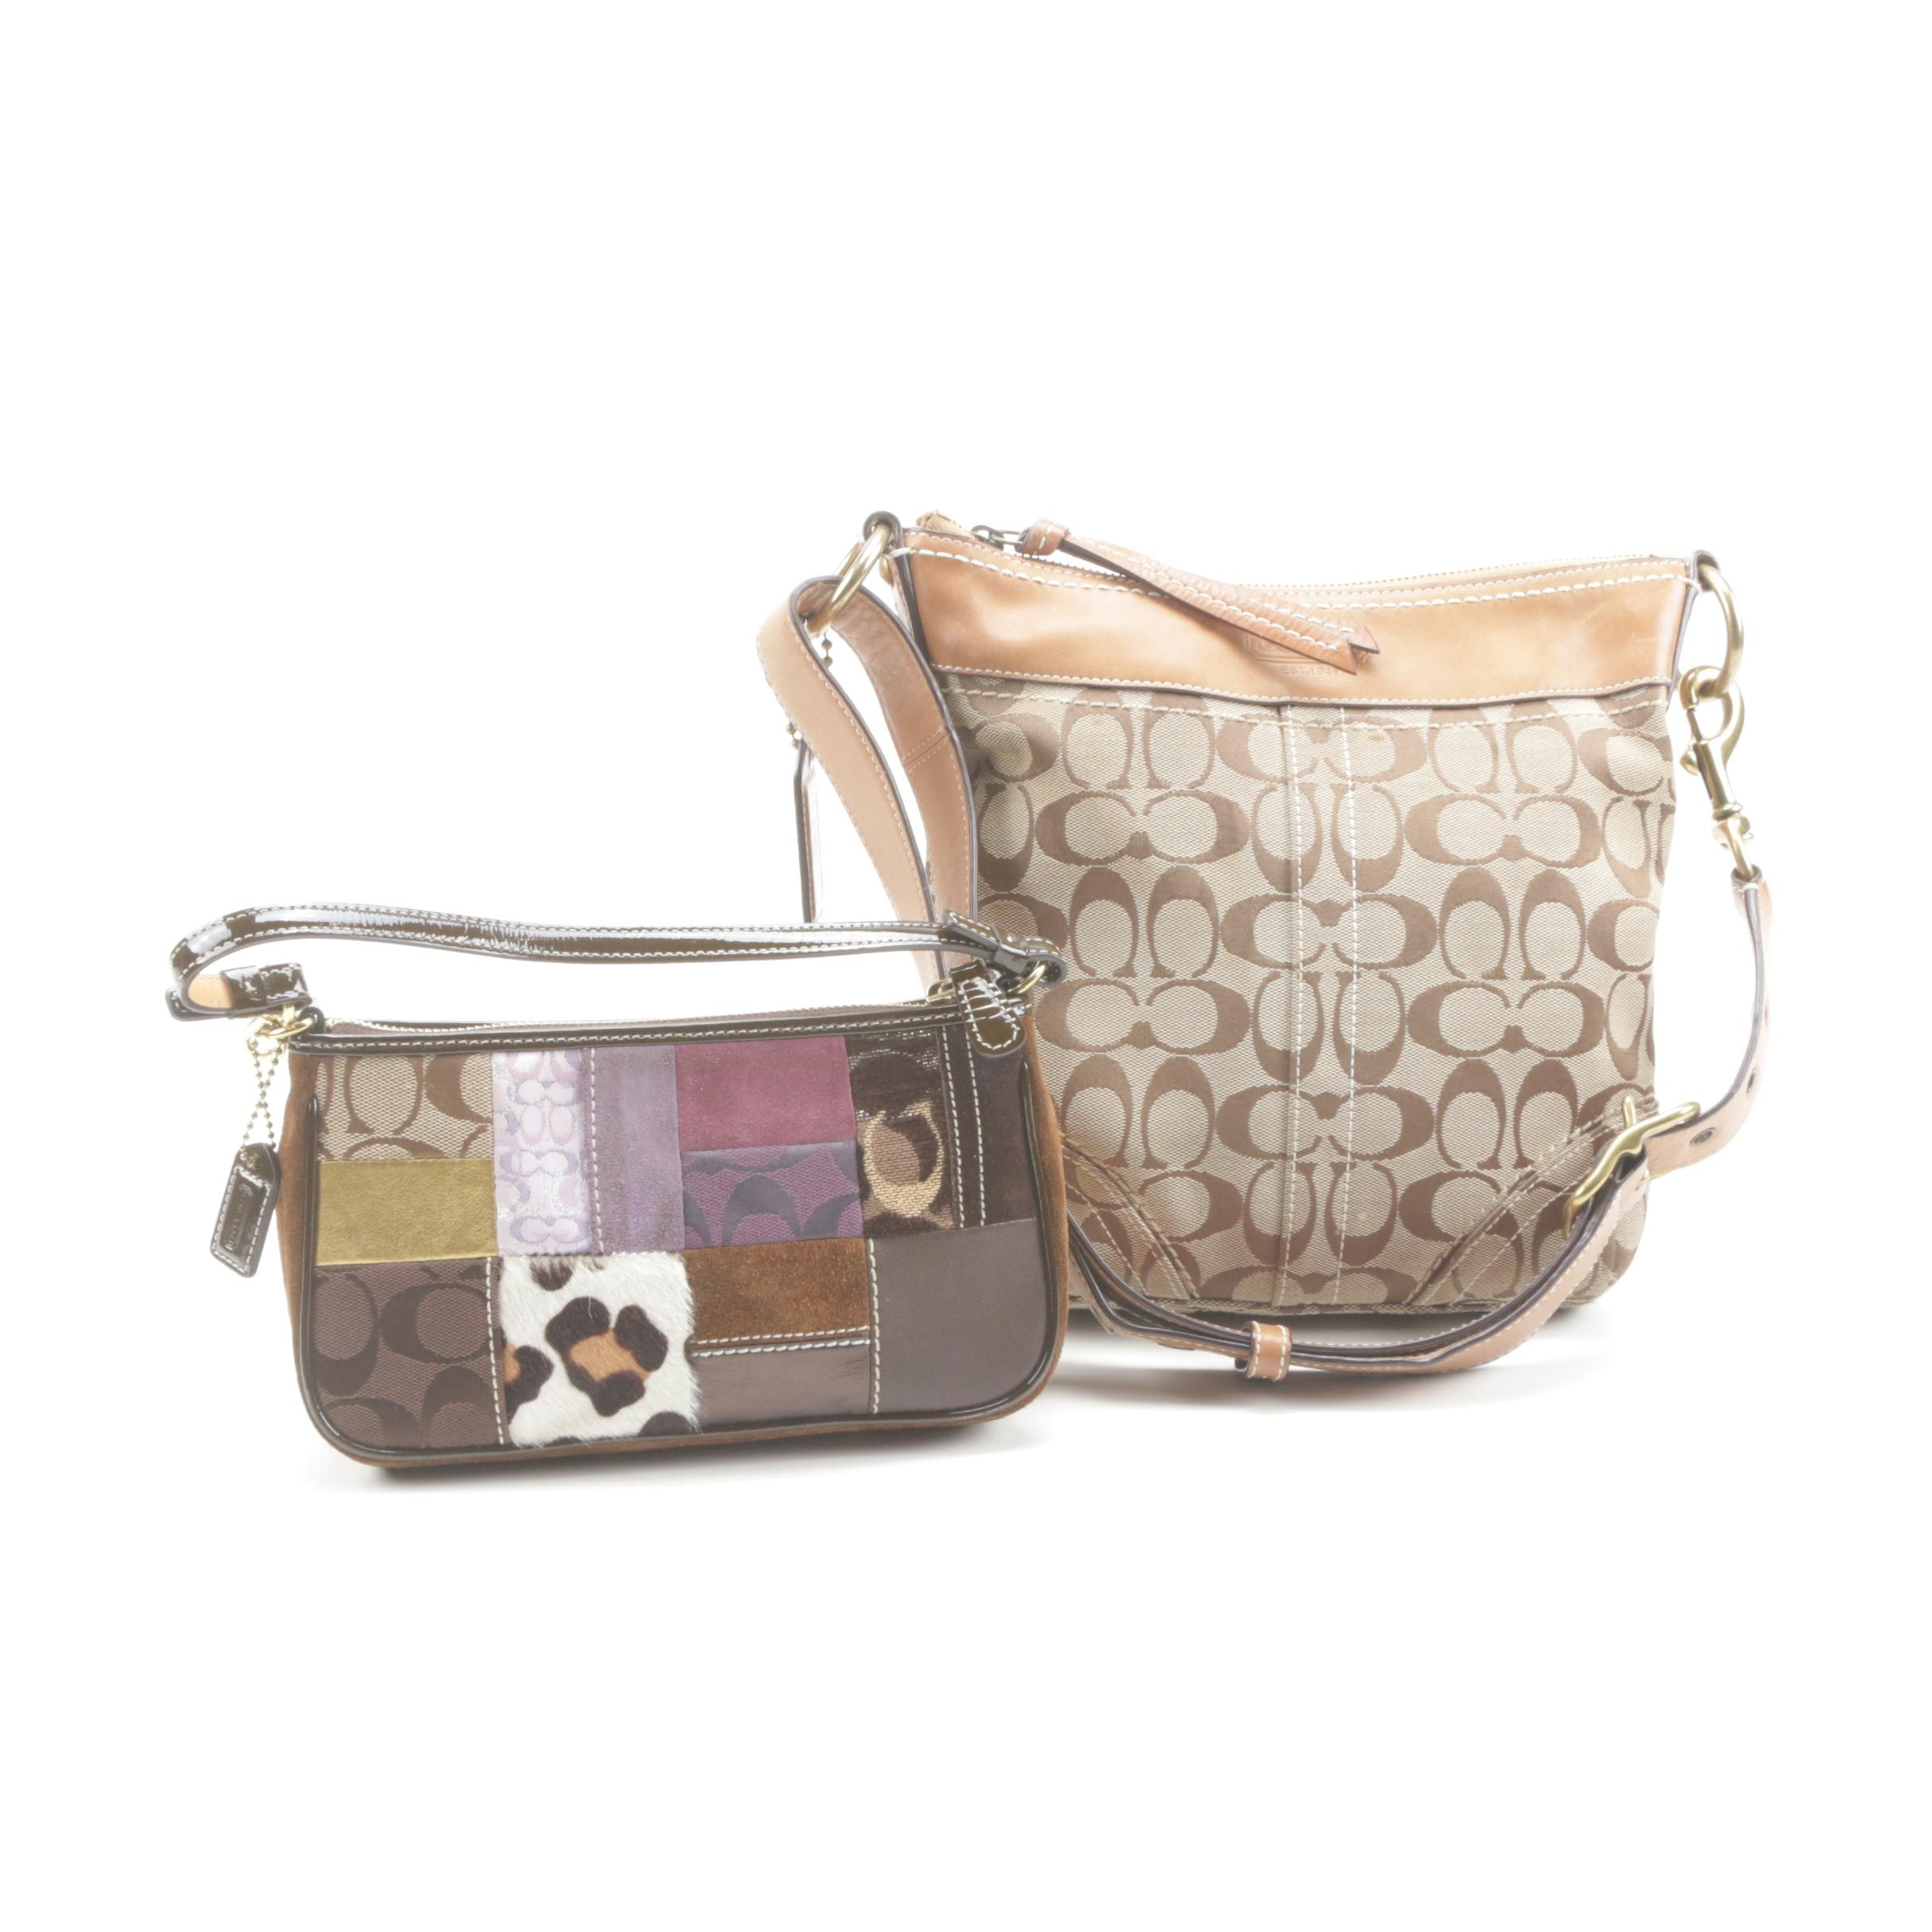 Coach Canvas and Leather Shoulder Bag and Coach Legacy Patchwork Demi Bag